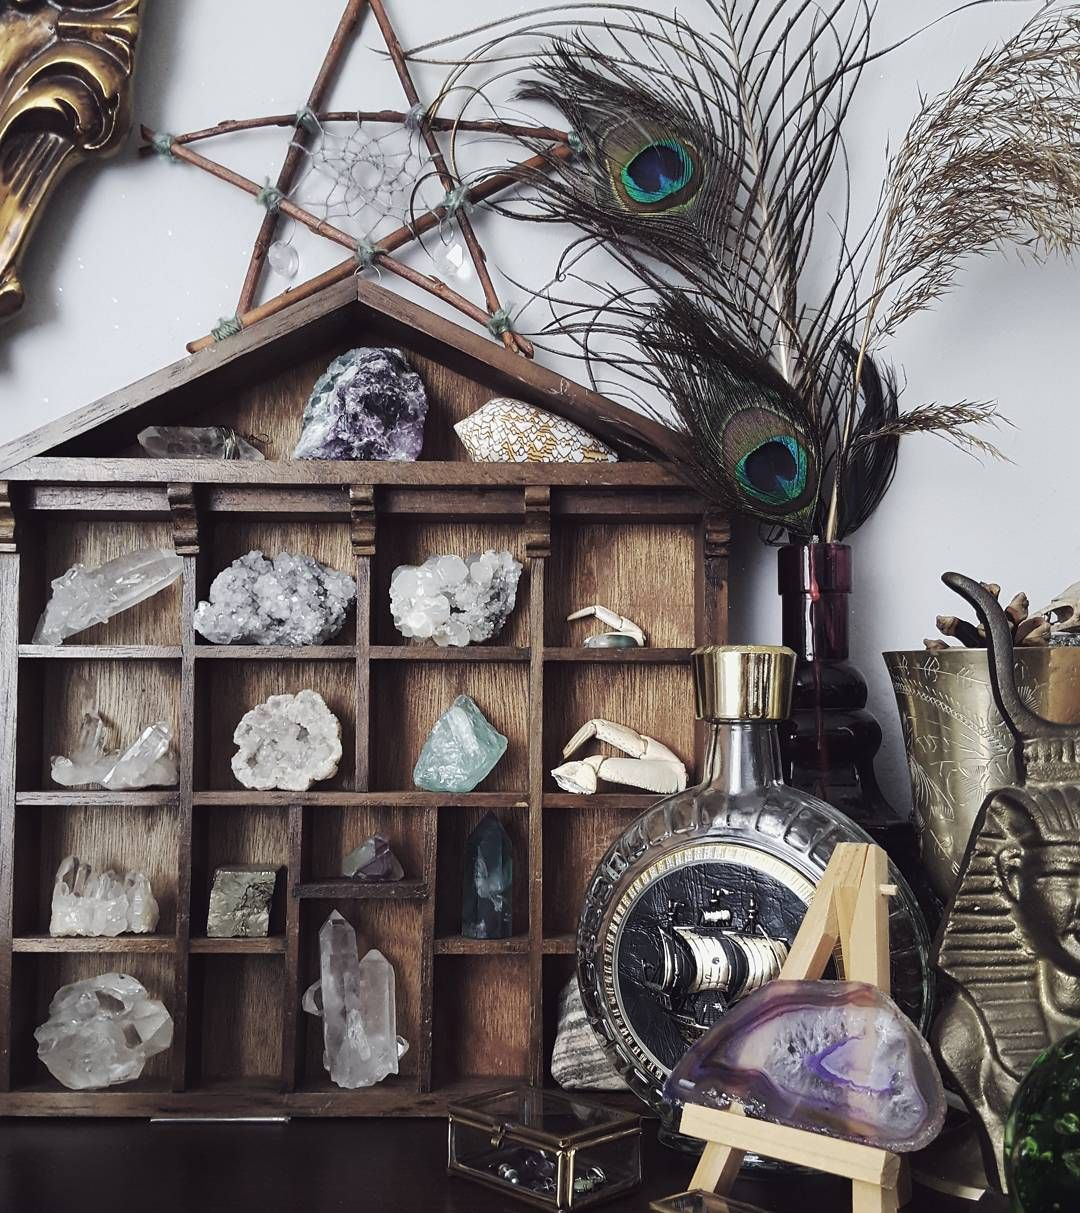 Pin By Teatreeohm On Wicca In 2019   Crystal Shelves, Wiccan